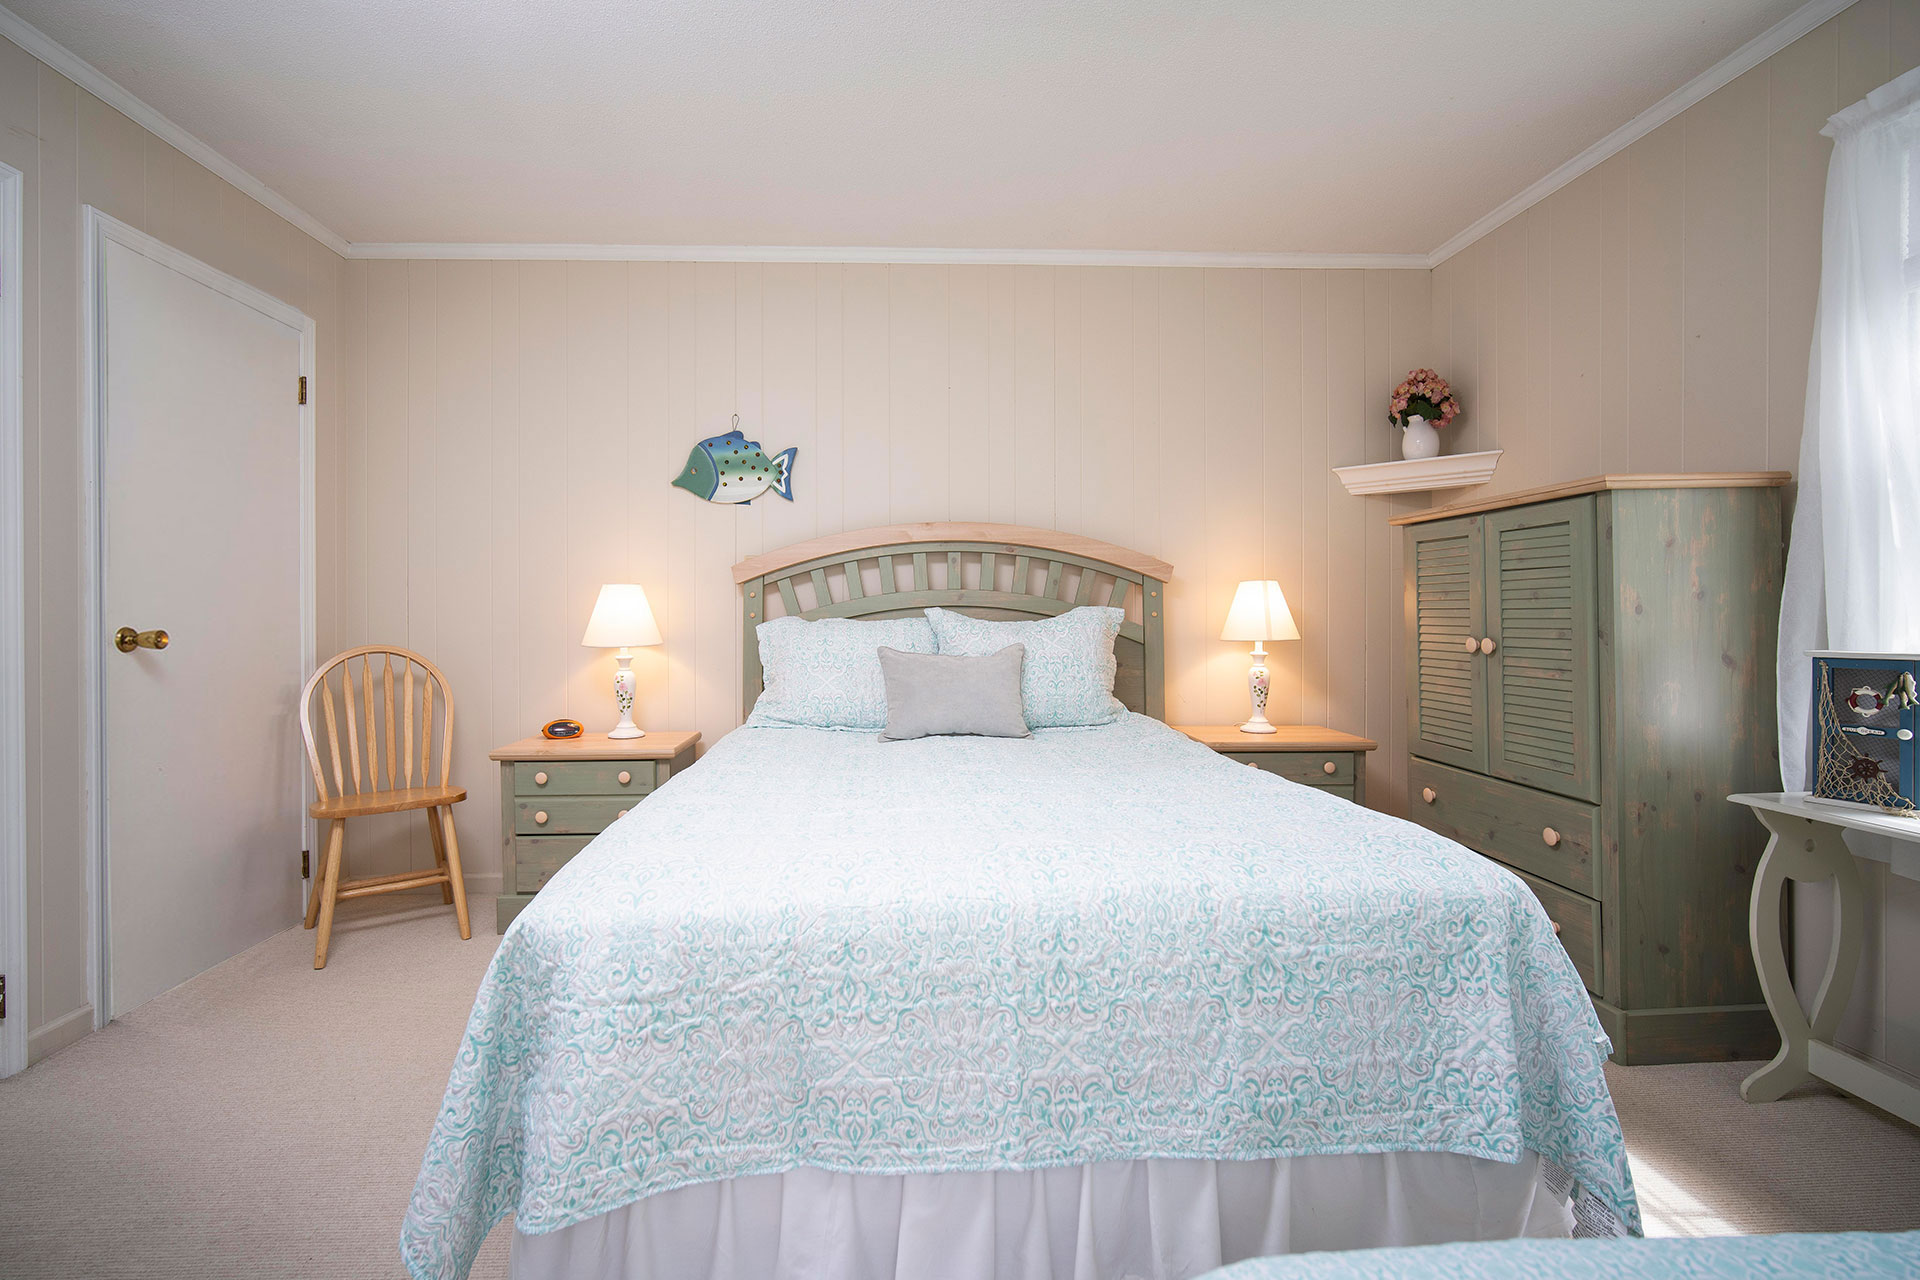 1 Bedroom Hyannis Vacation Rental Cottage Queen Bed